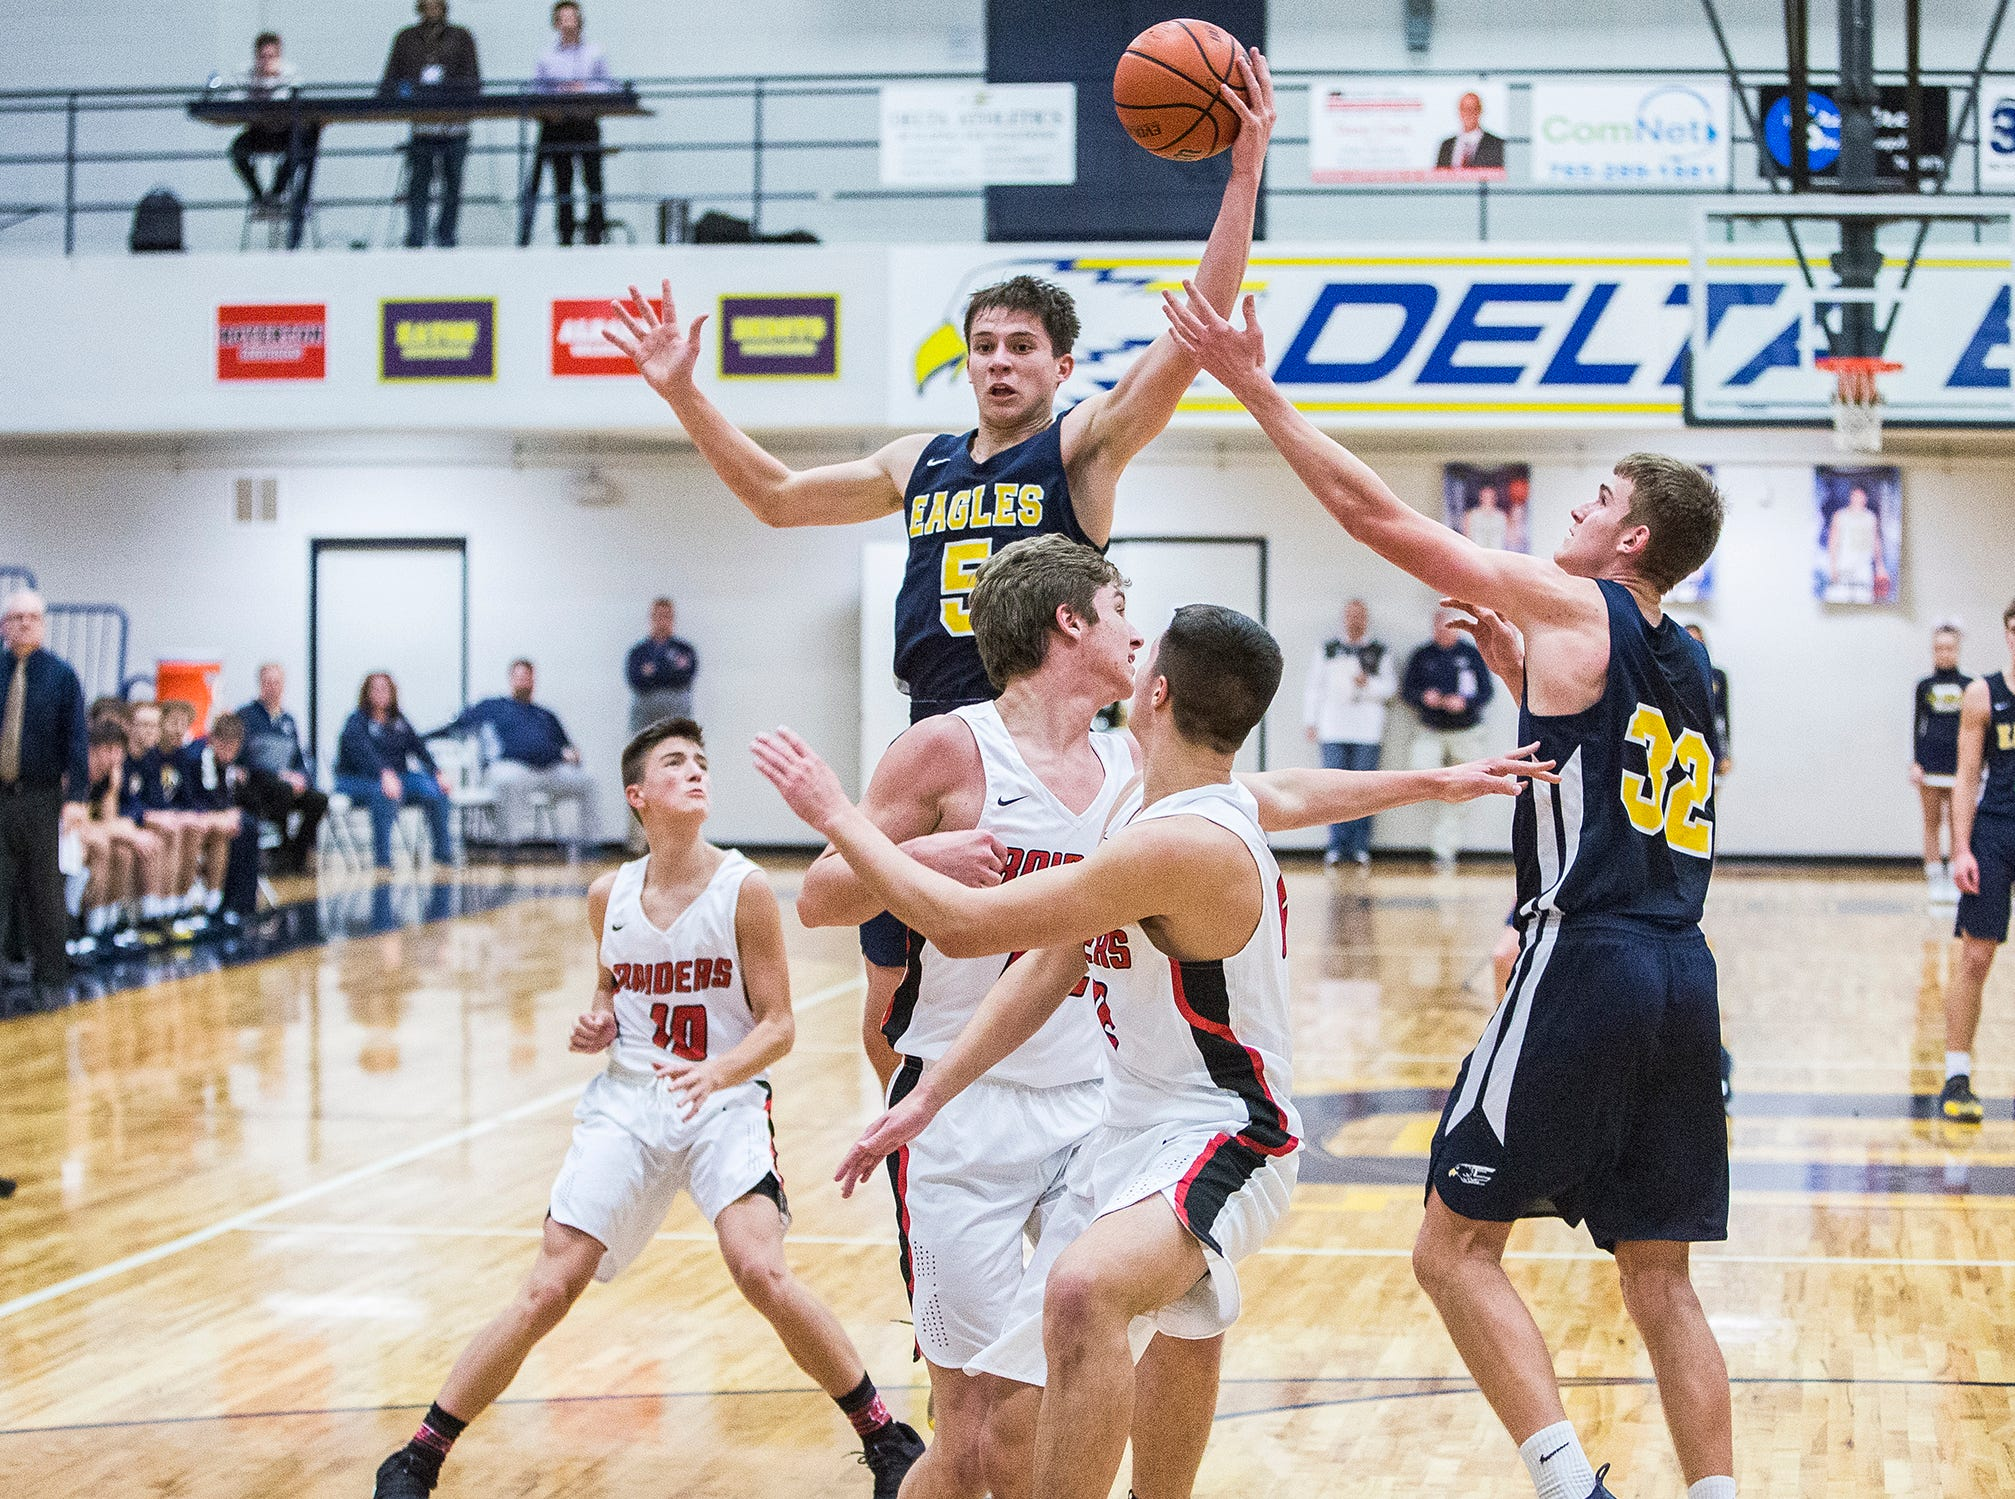 Delta faces off against Wapahani during the Delaware County Basketball Tournament at Delta High School Tuesday, Jan. 8, 2019.